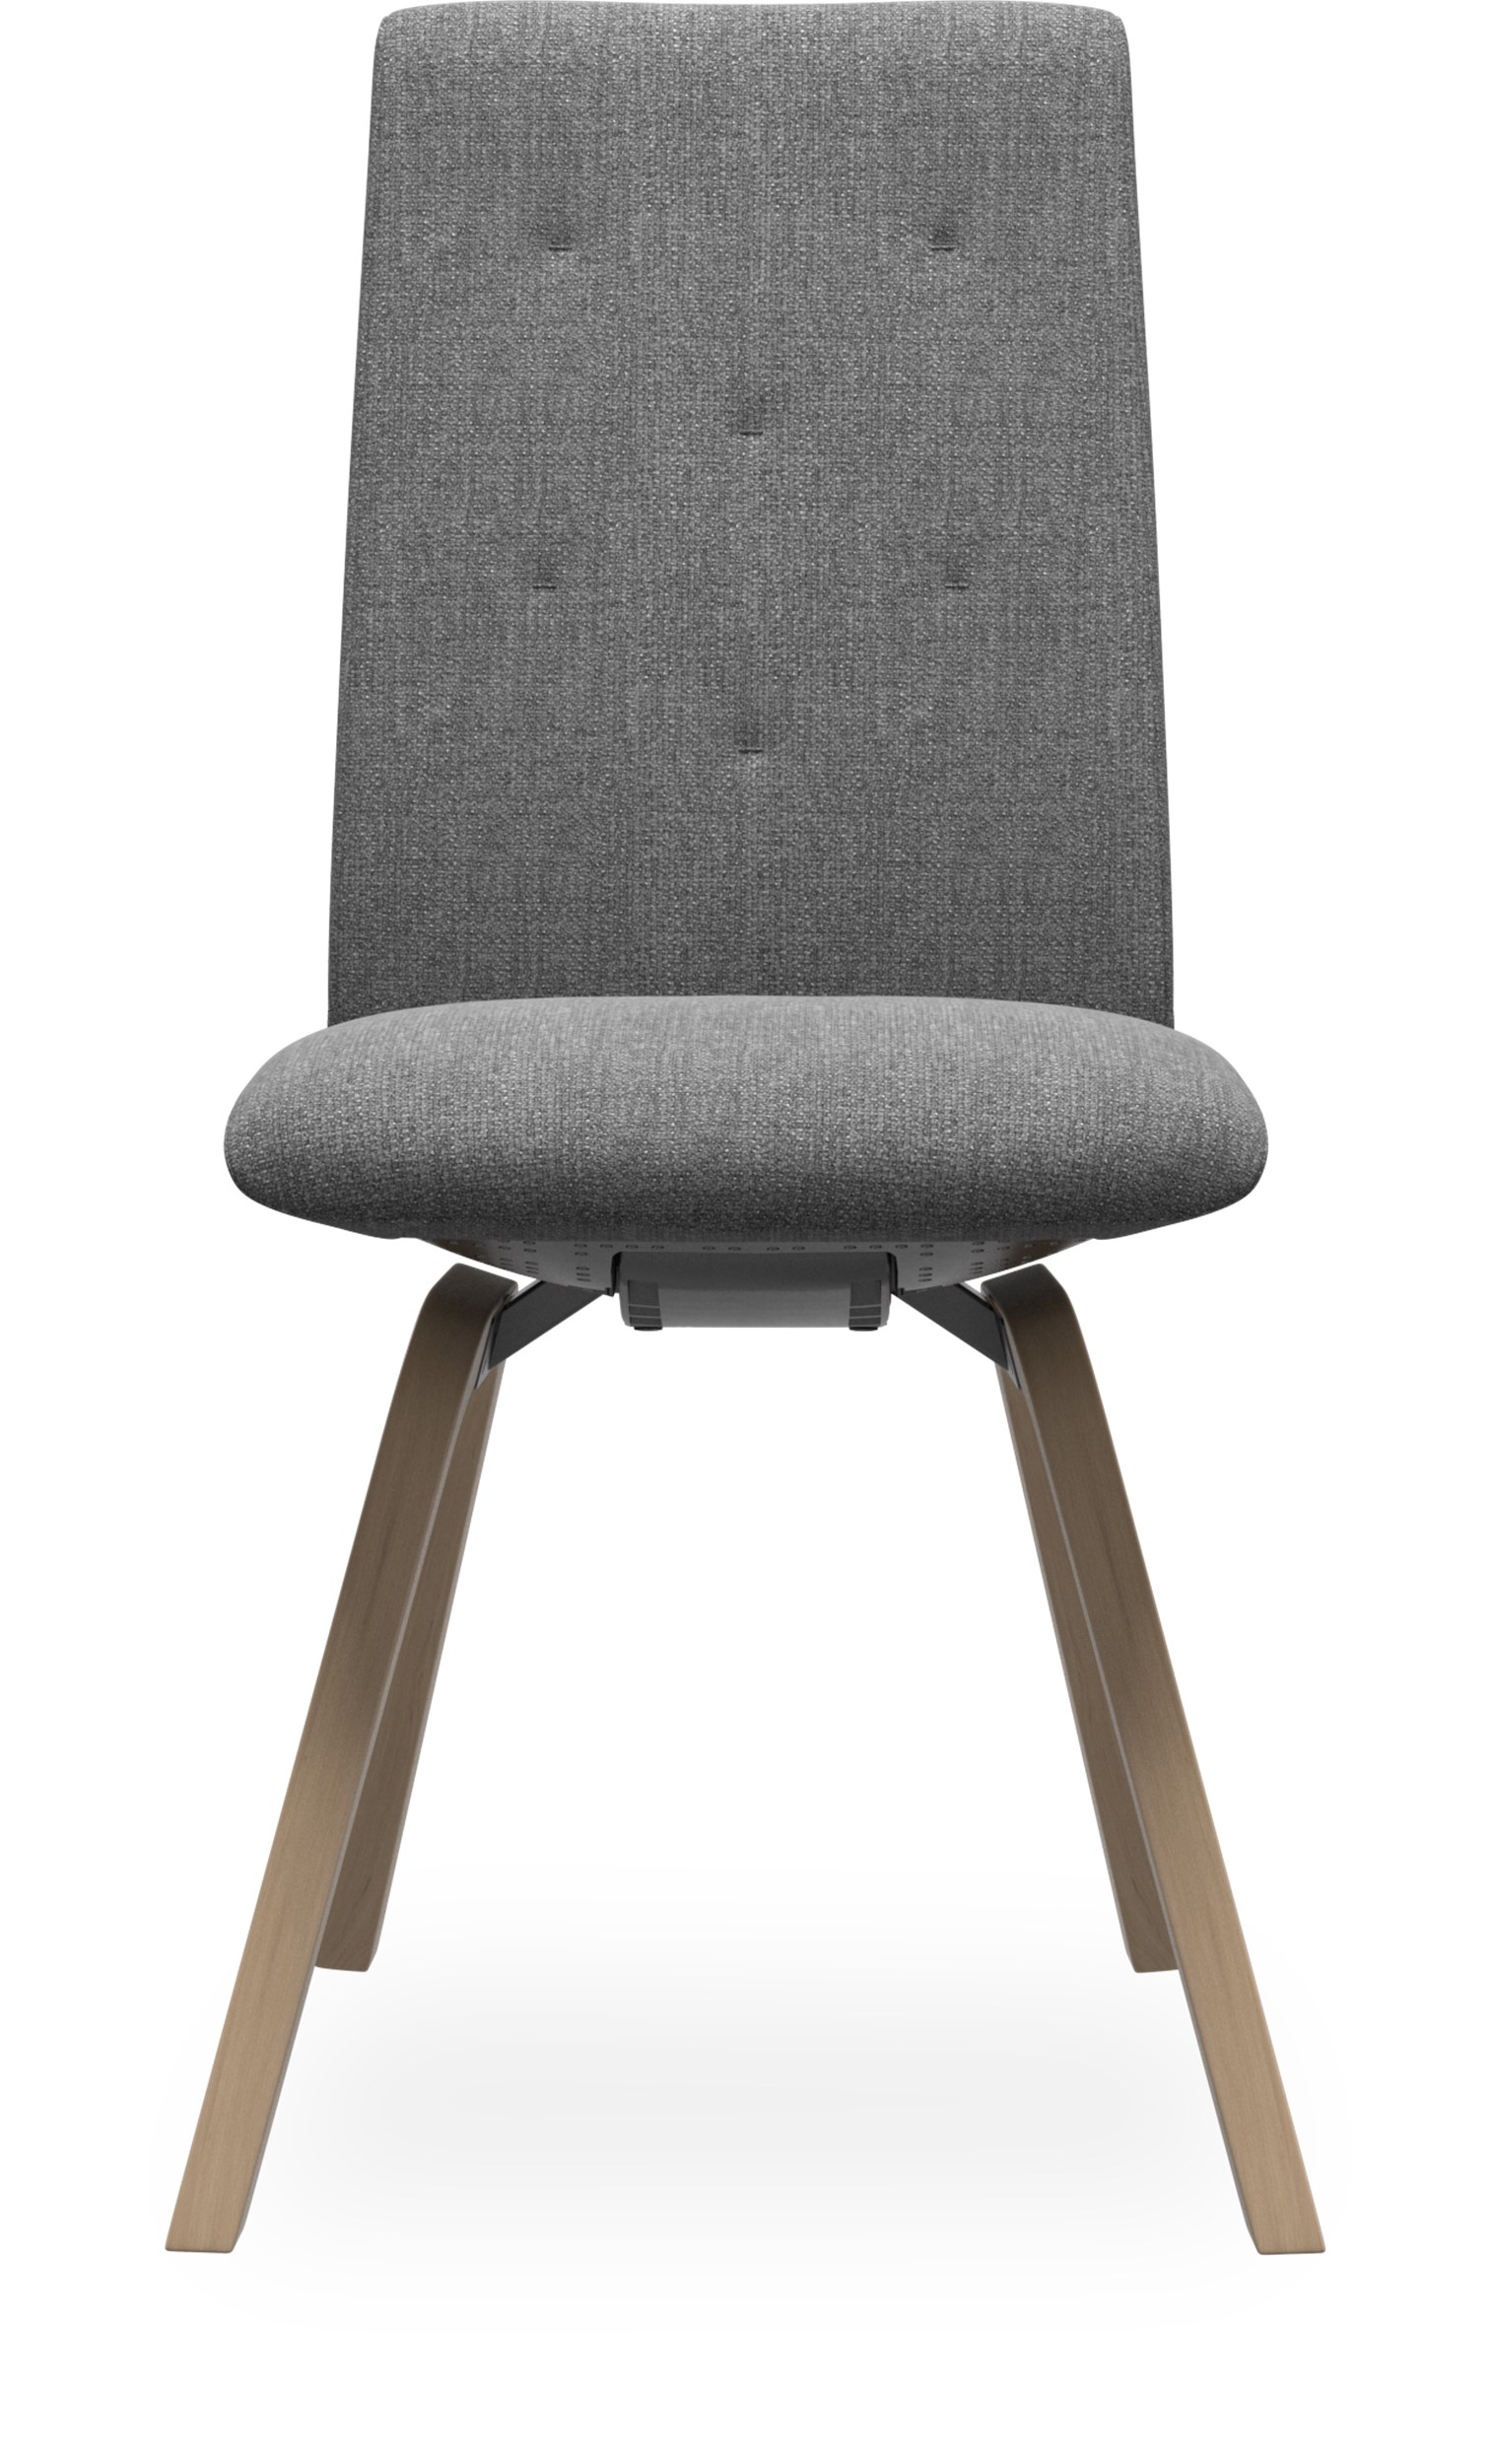 Stressless M D200 Rosemary low Spisebordsstol